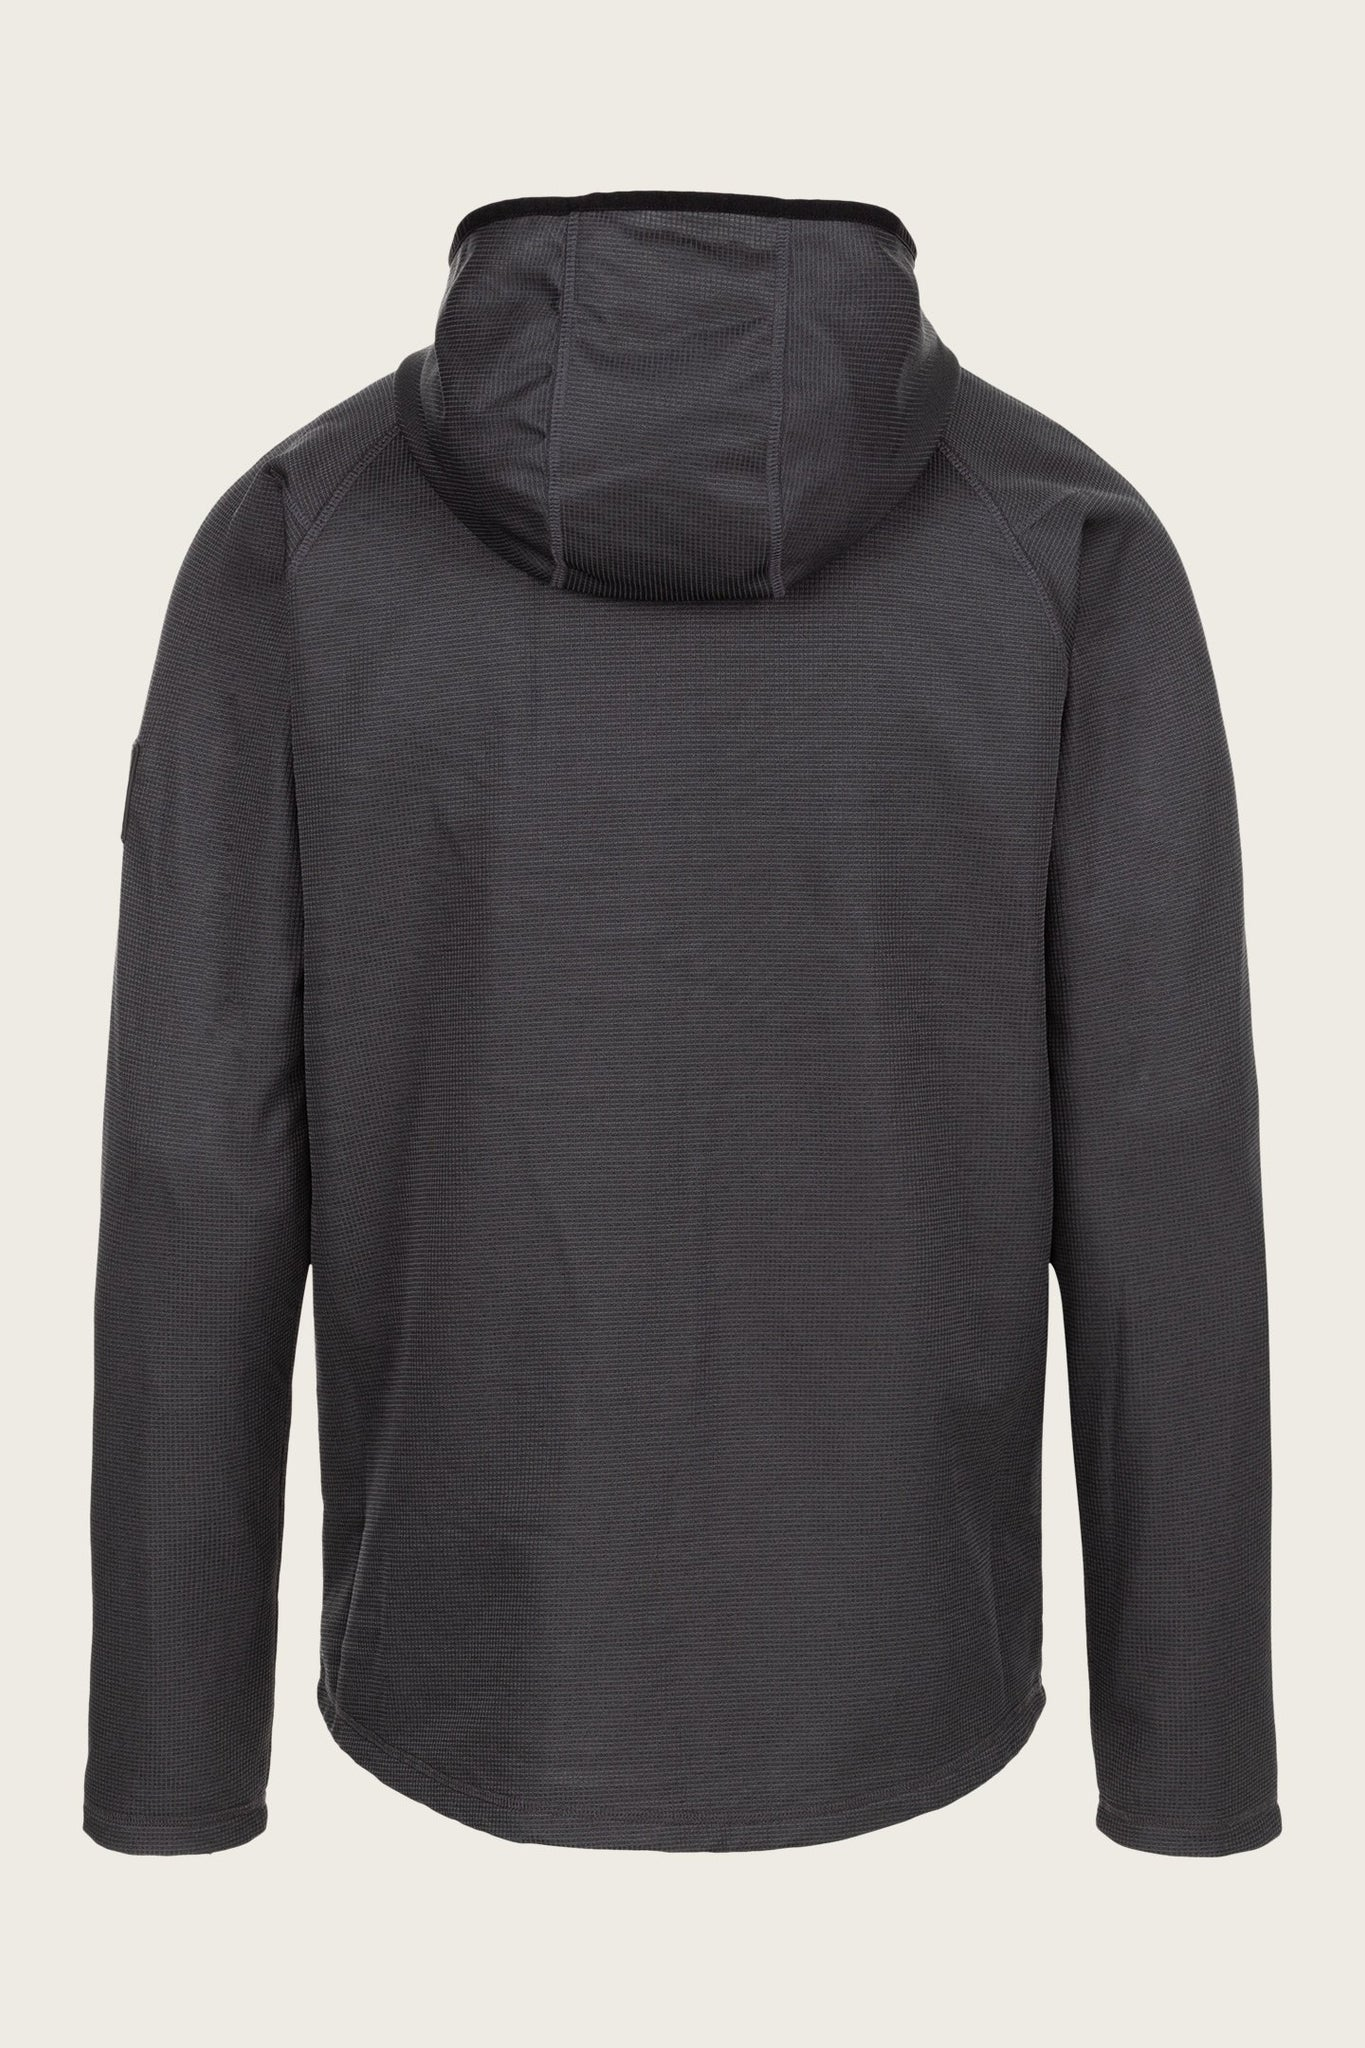 Athmos Fz Hooded Fleece | O'Neill Clothing USA